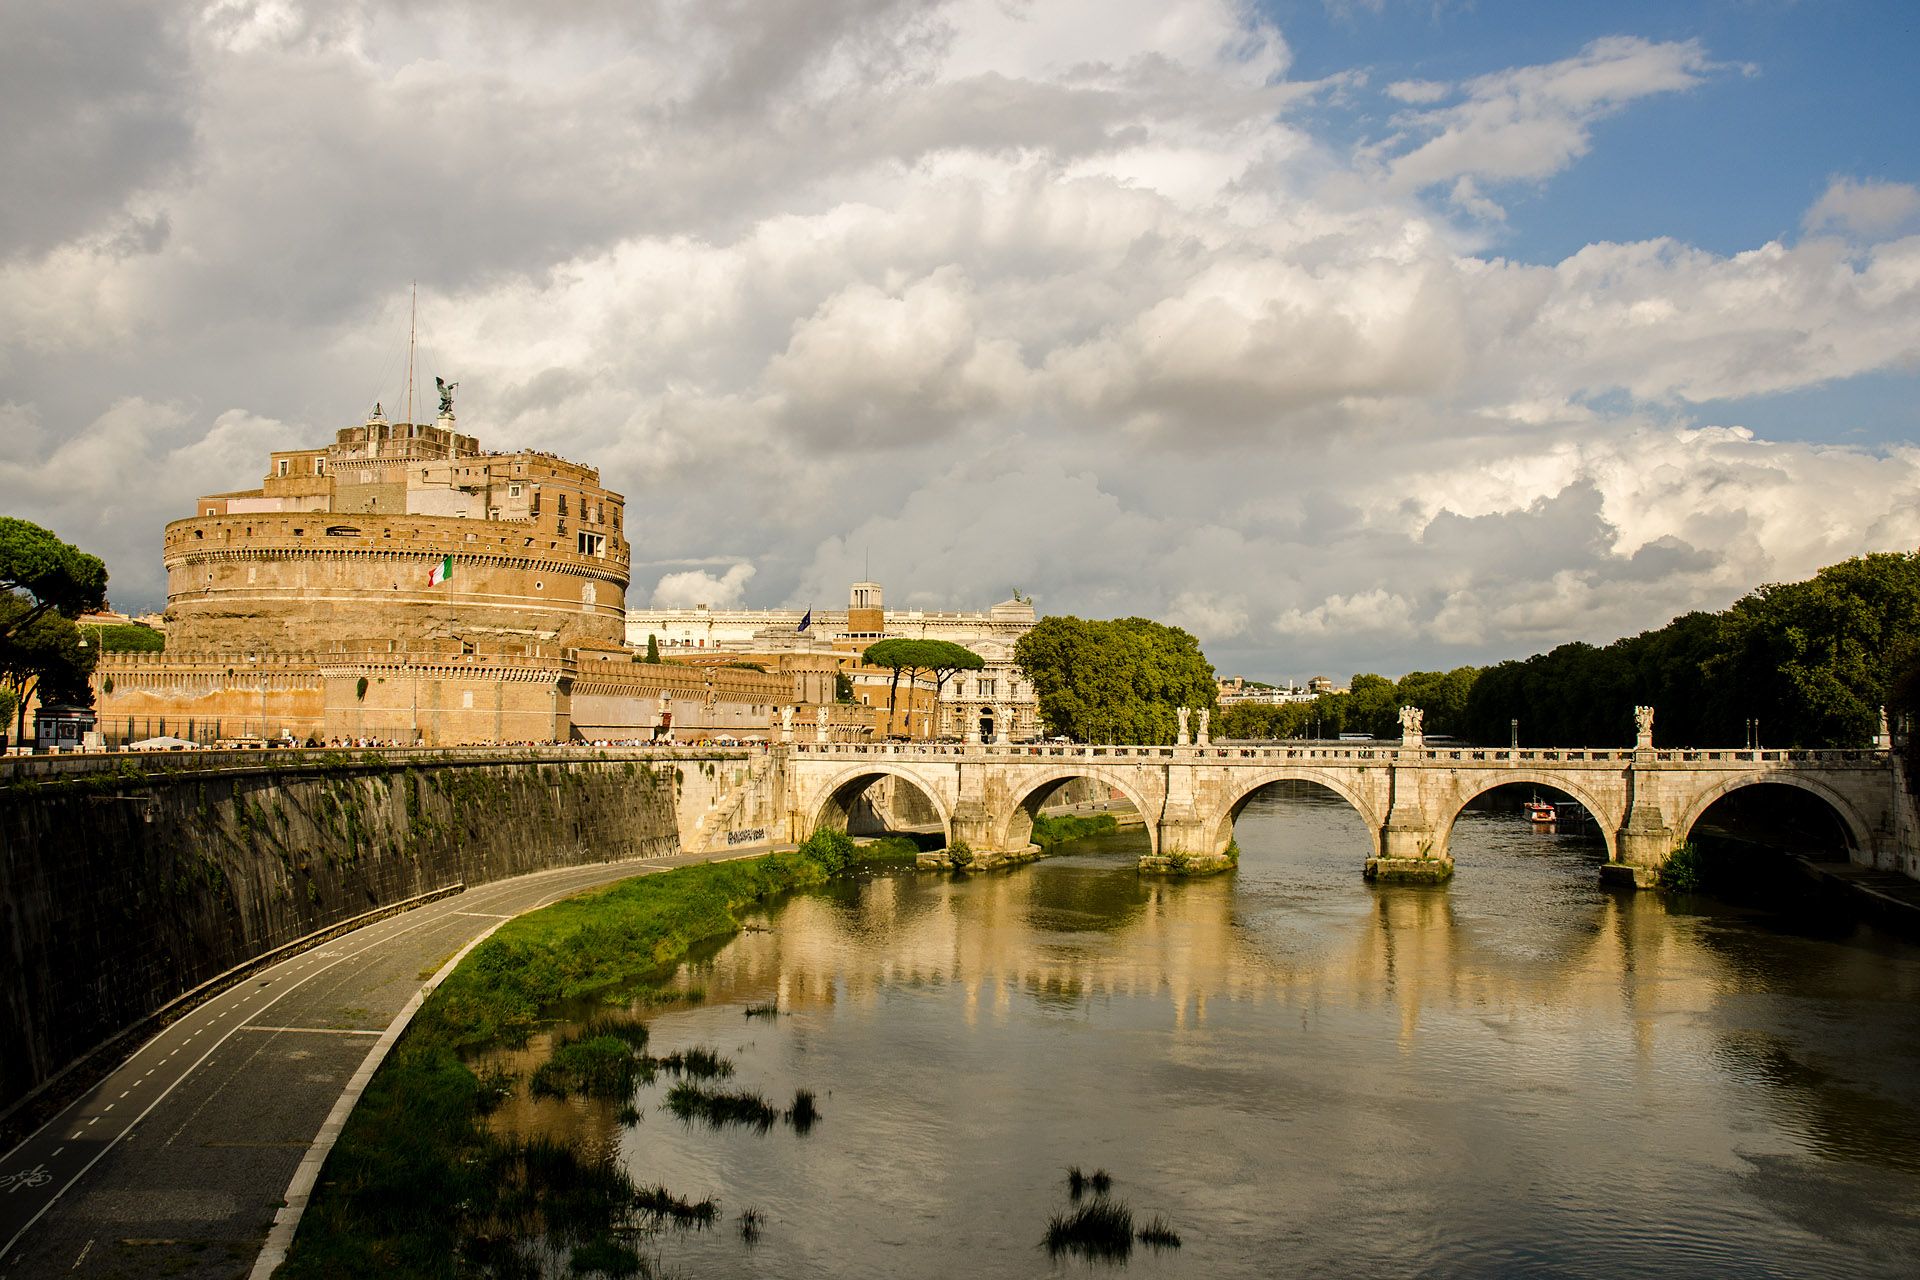 Castle Sant'Angelo & St. Angelo Bridge